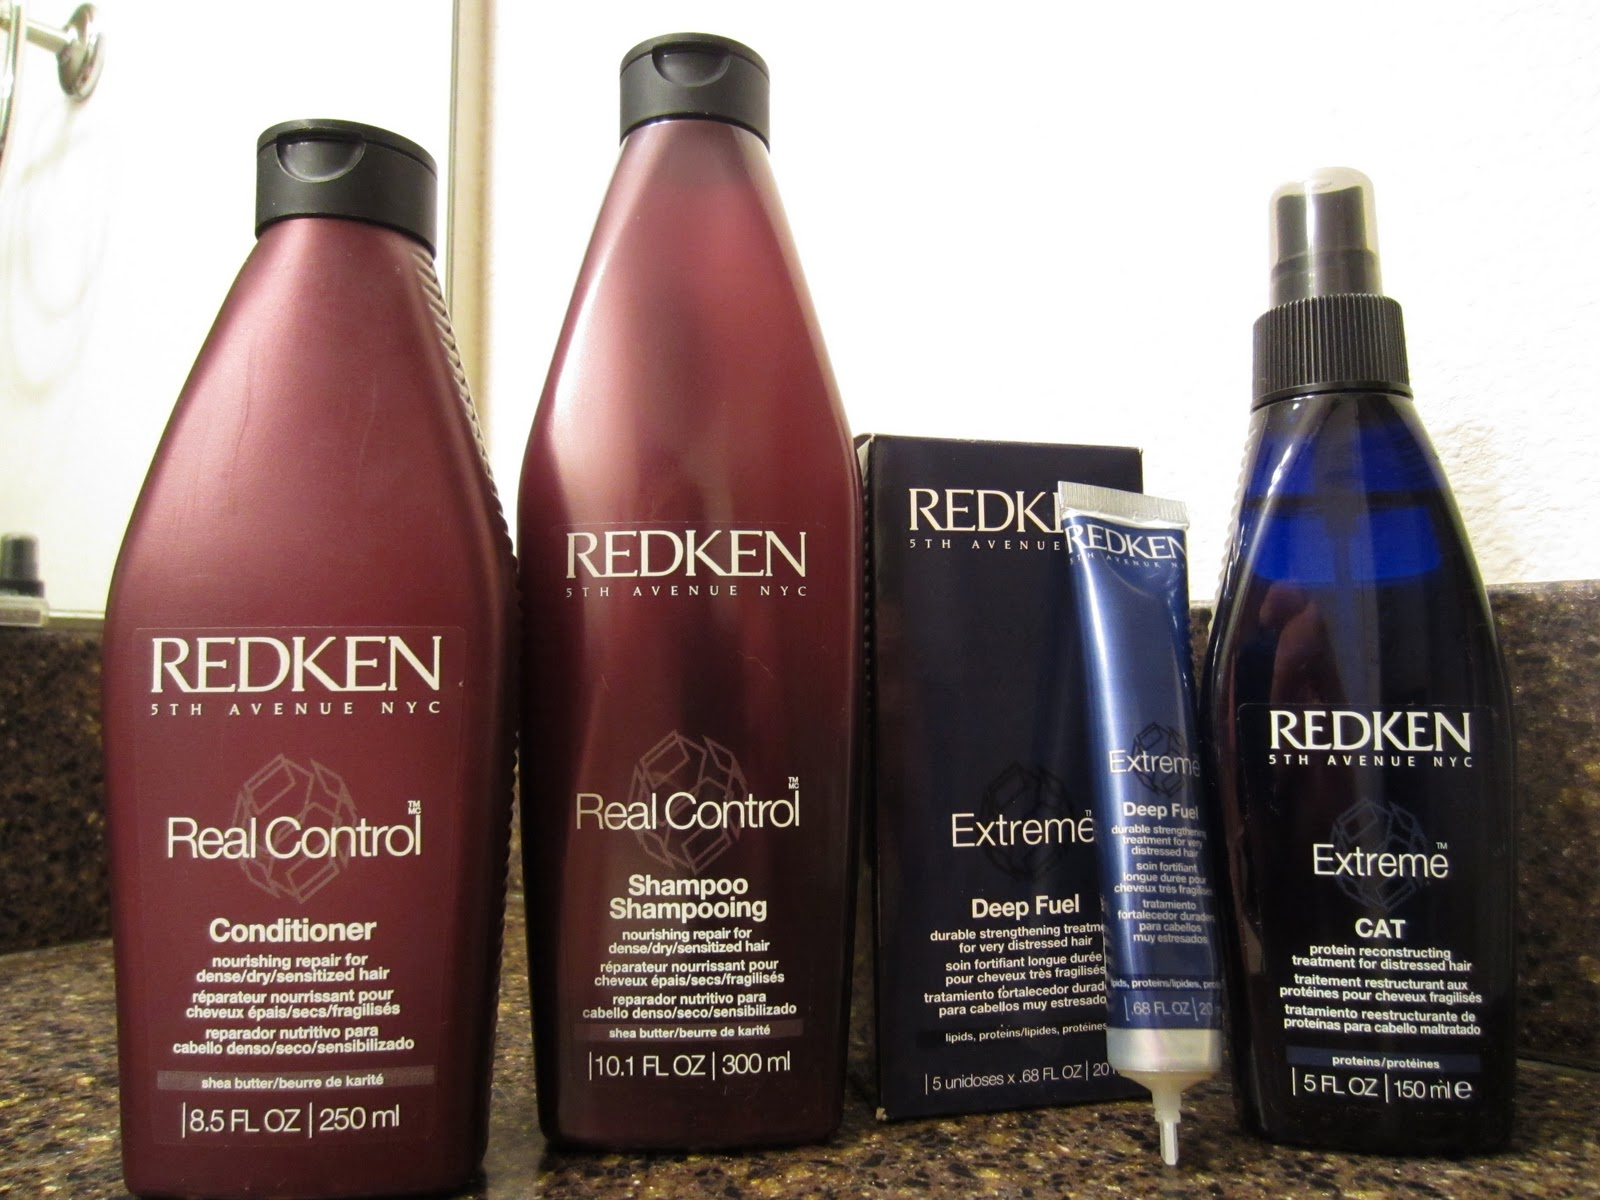 redken extreme deep fuel how to use